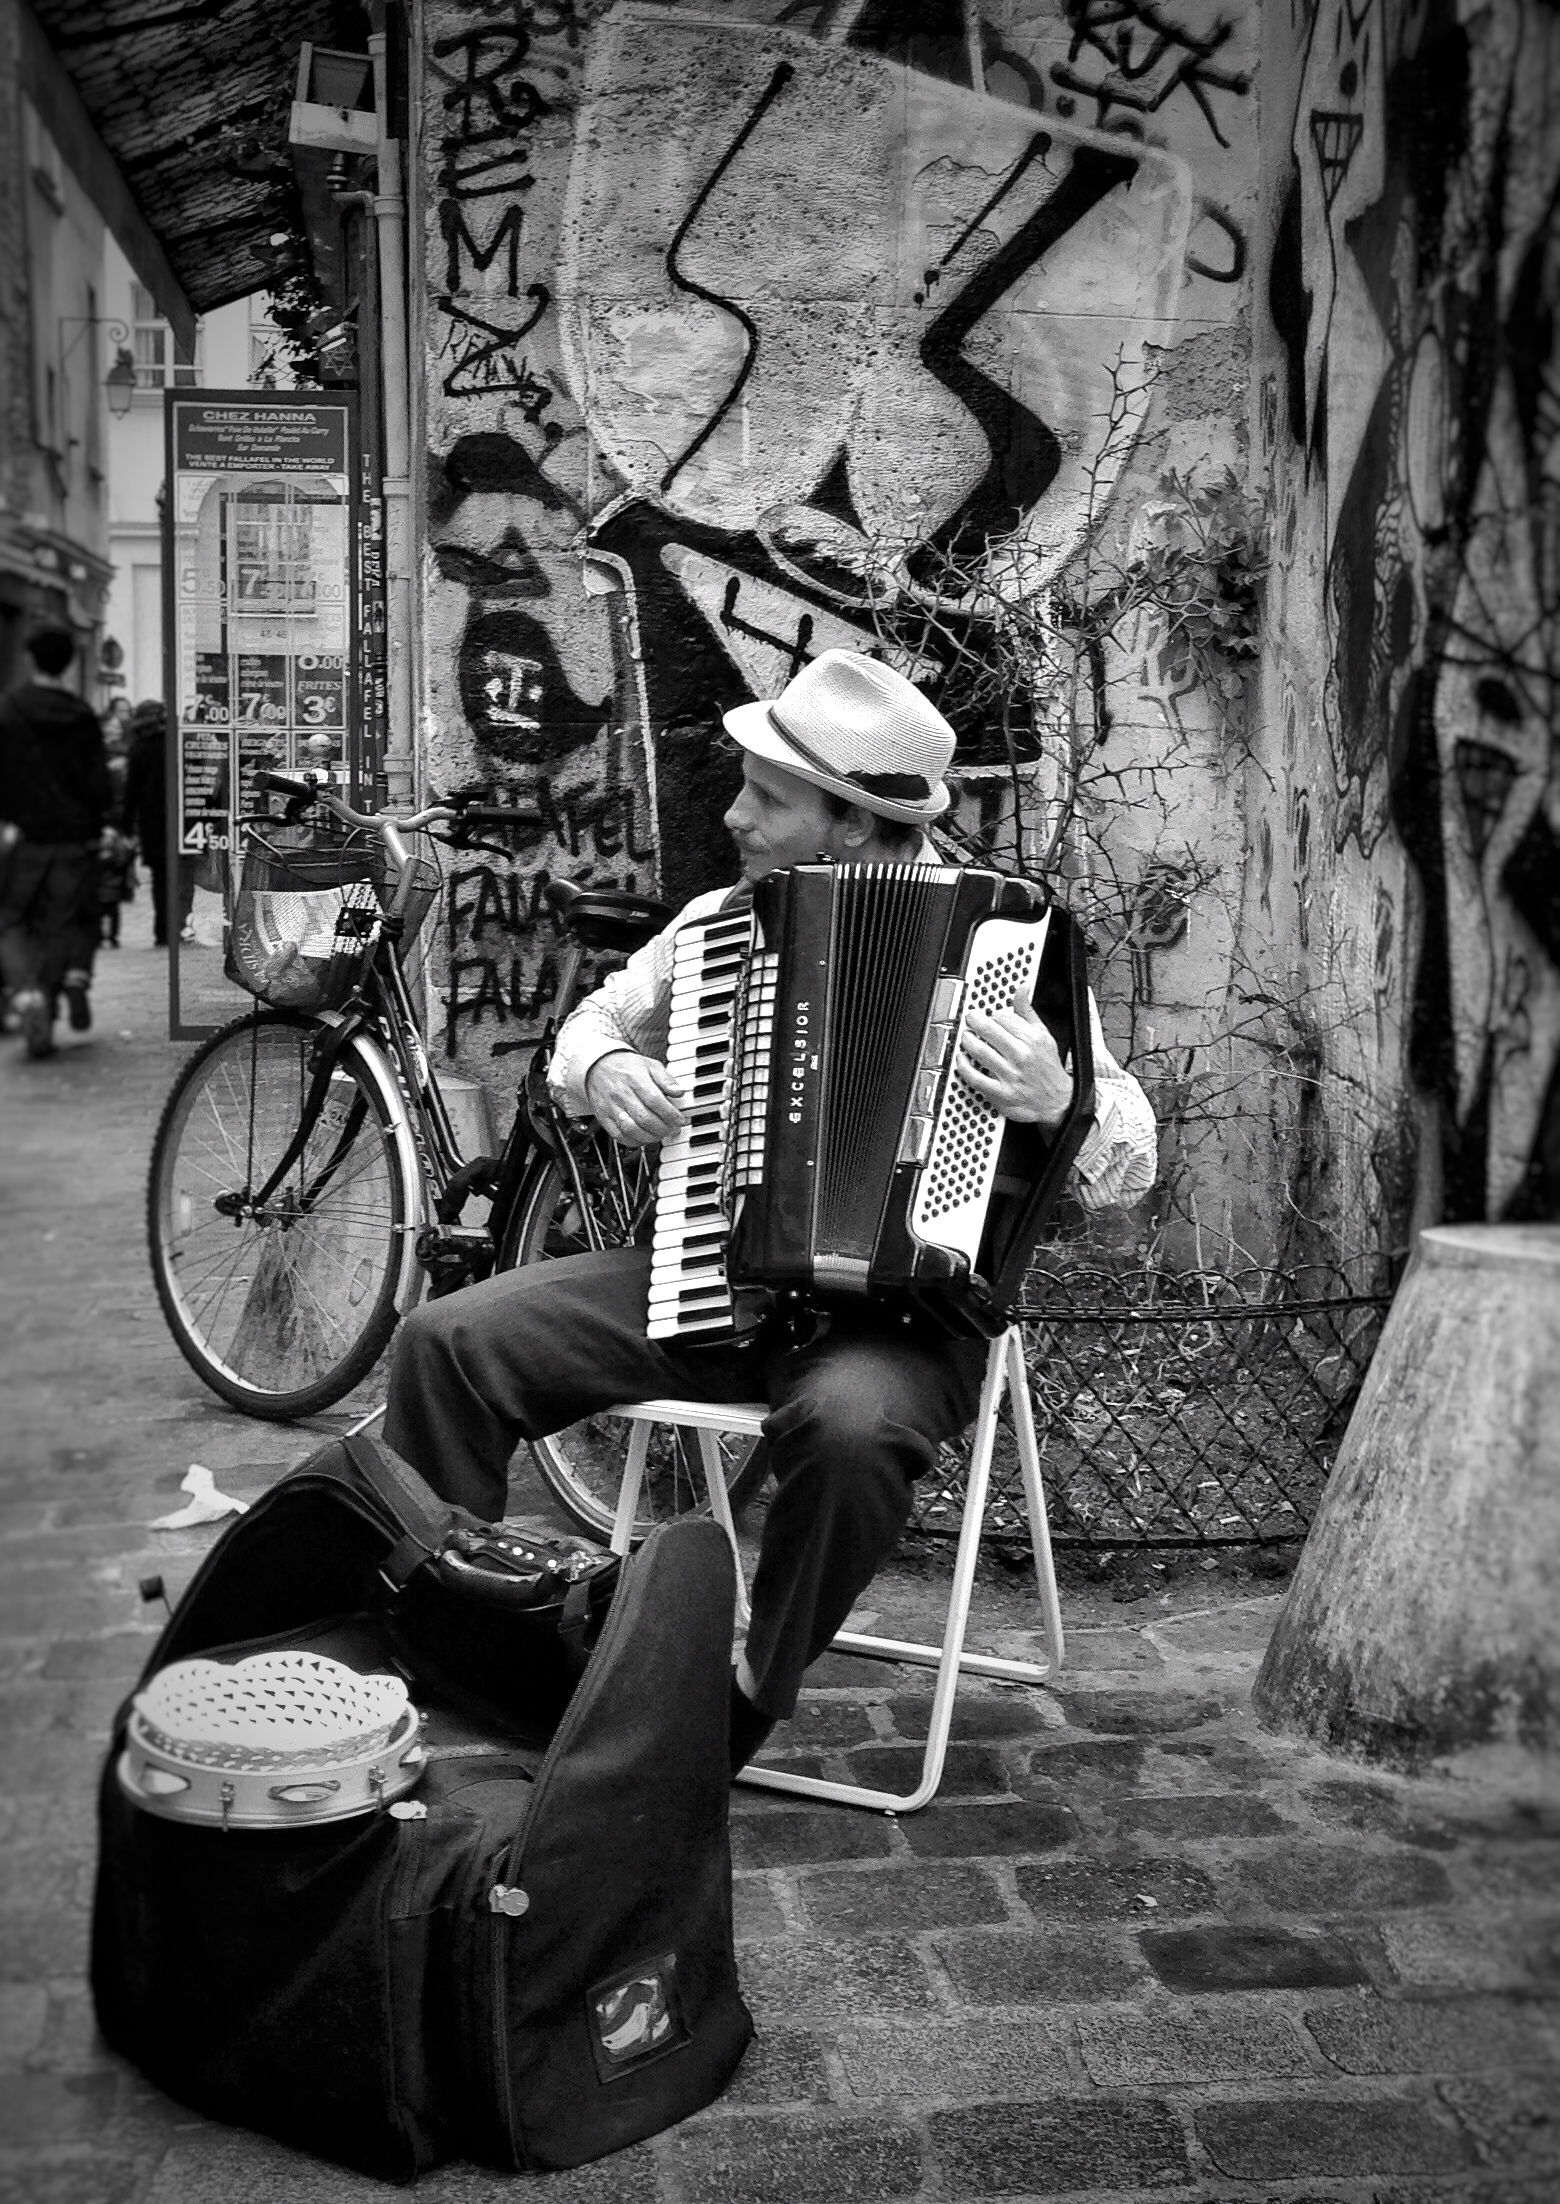 Copy of The Accordian Player in Le Marais